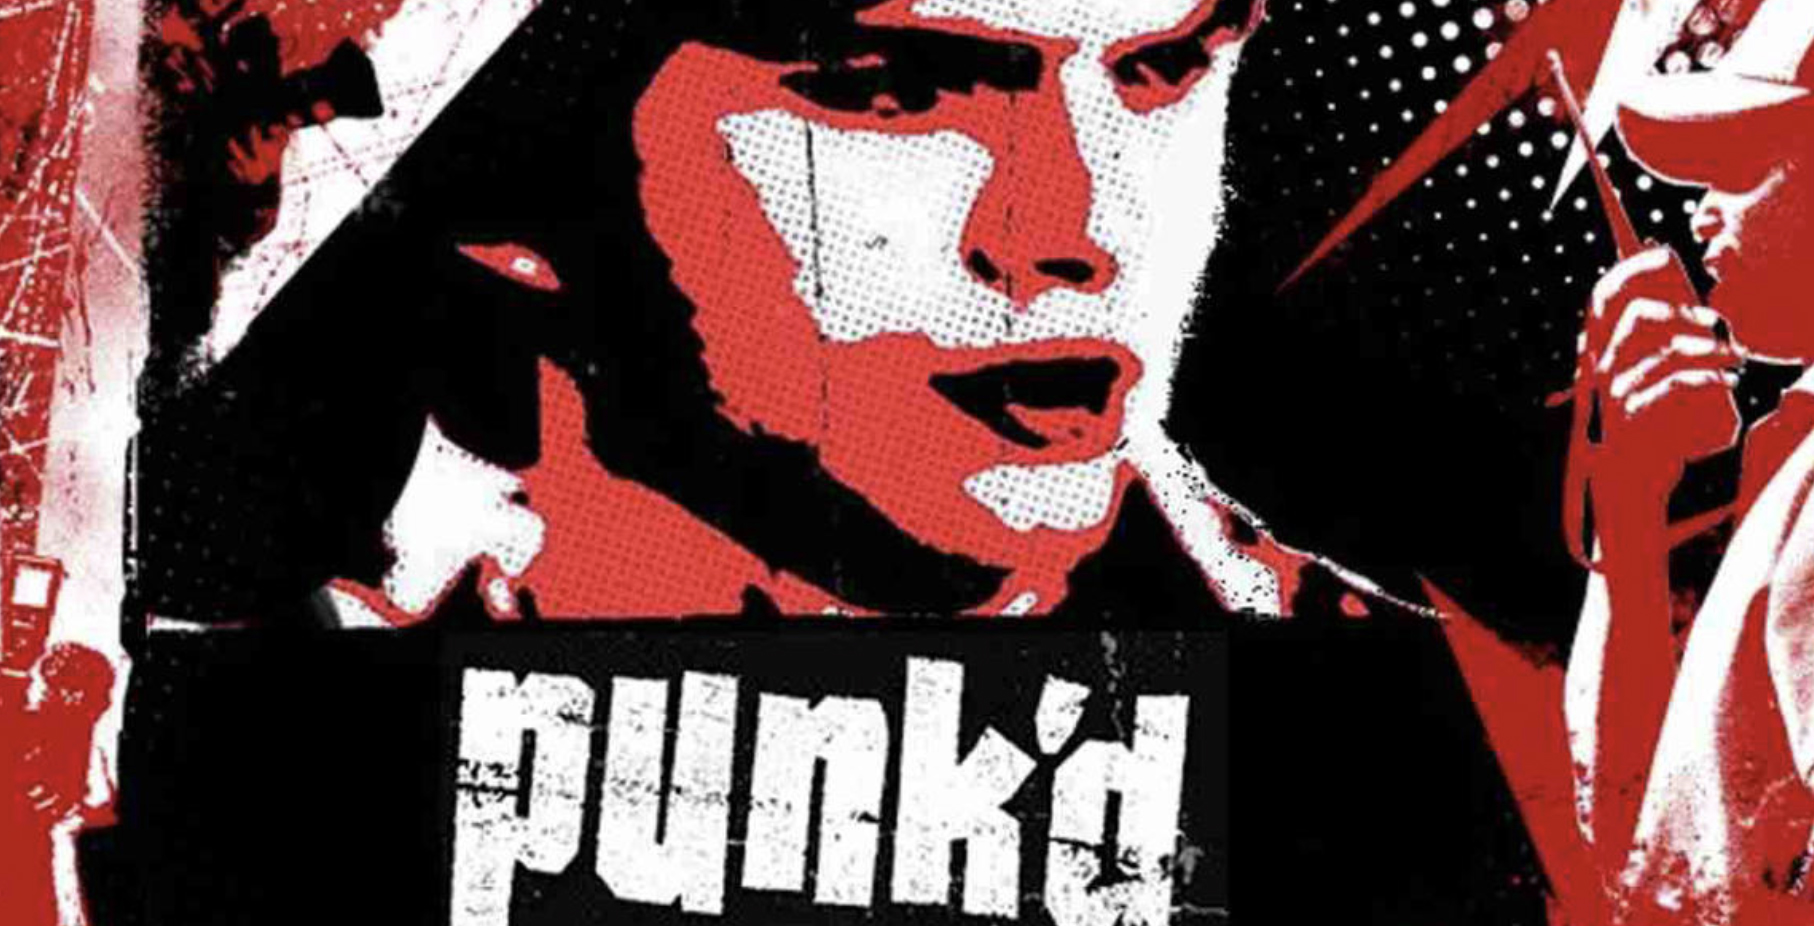 Punk'd and Singled Out are currently in the works, coming to Quibi